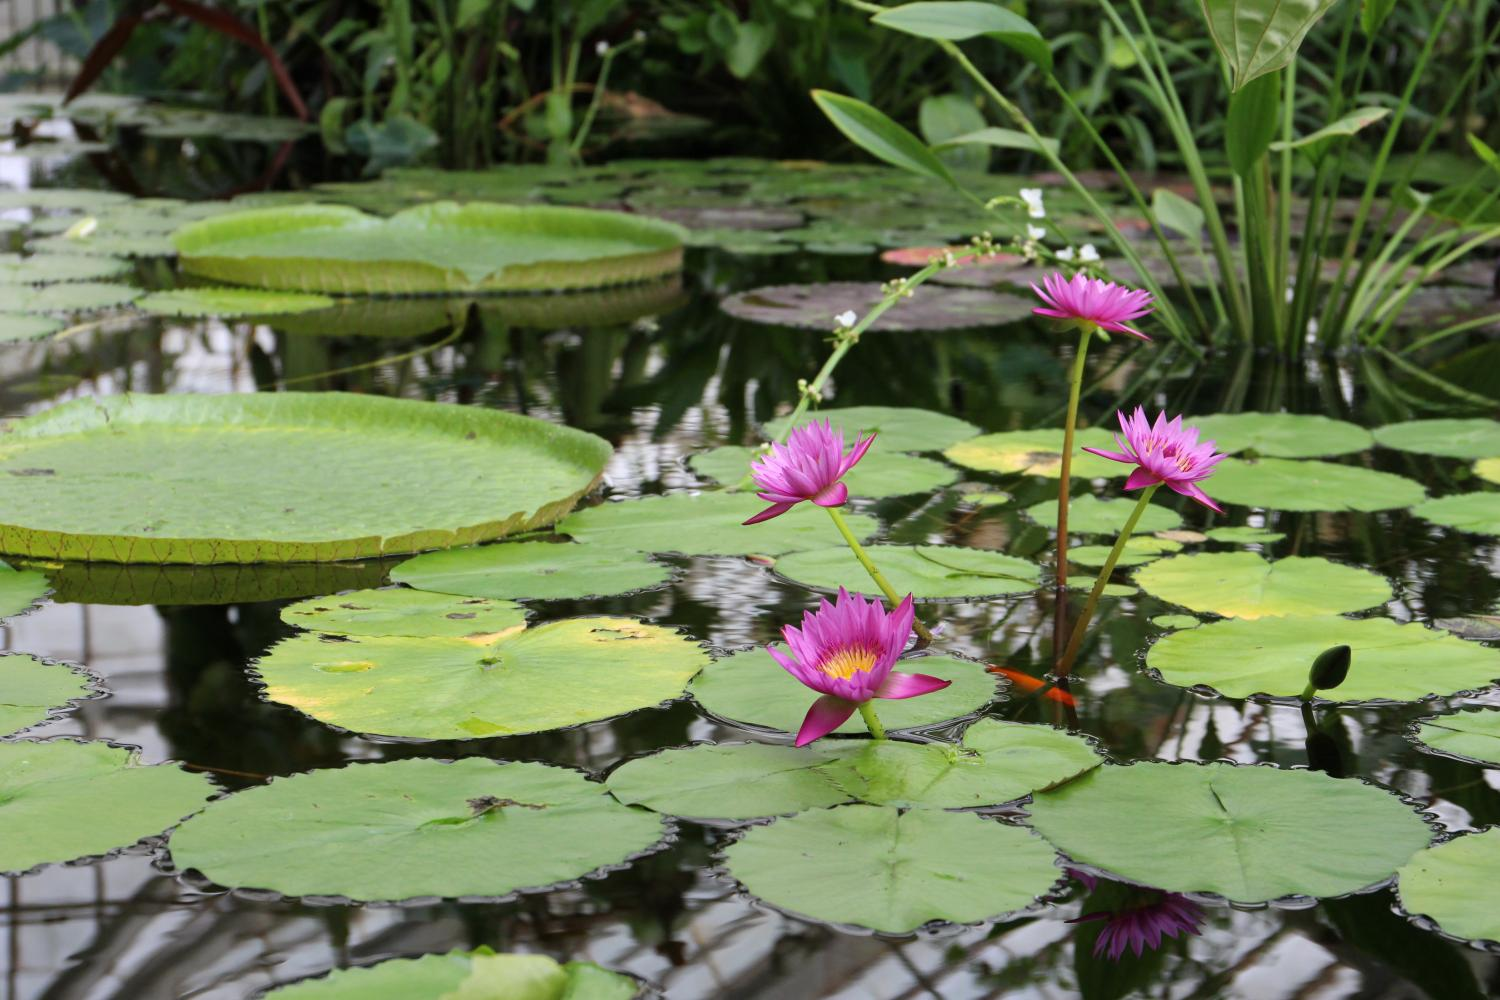 One of the thriving organisms in the aquatics in the Conservatory of Flowers, the water lily are rooted in the soil on the bottom of small bodies of water.